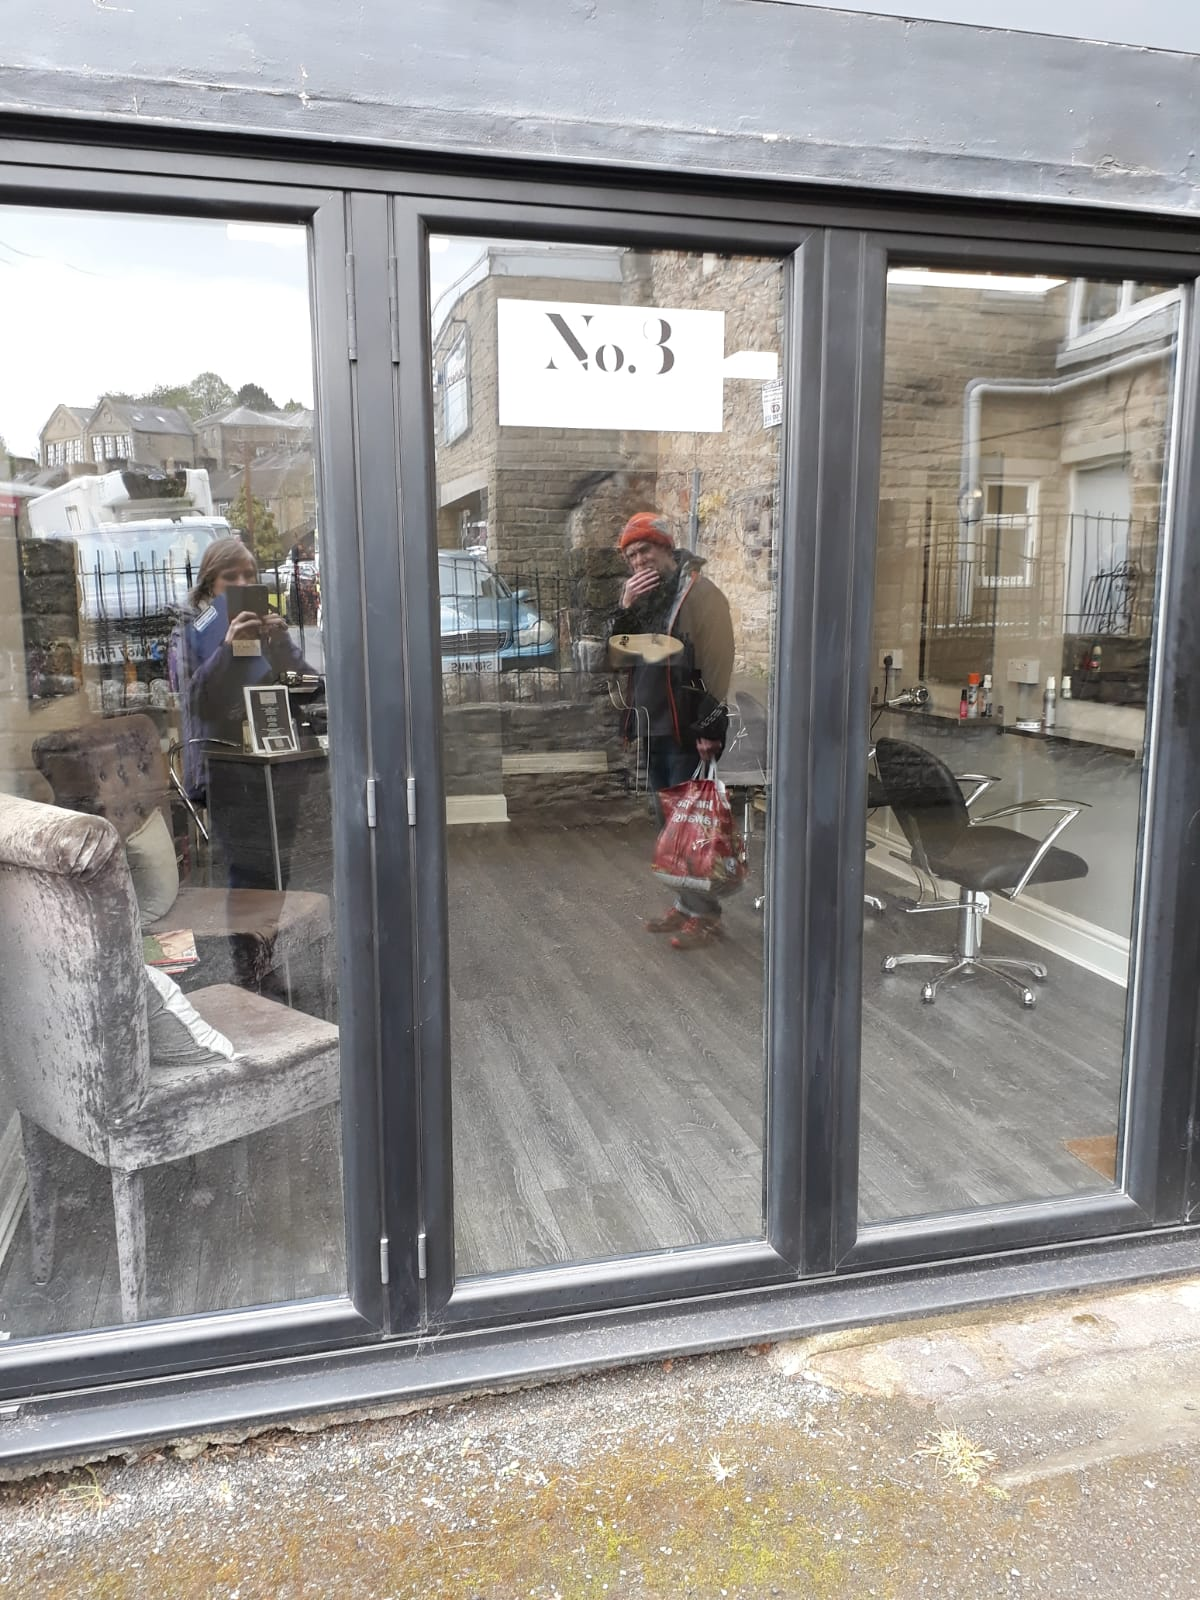 25. No 3 Salon